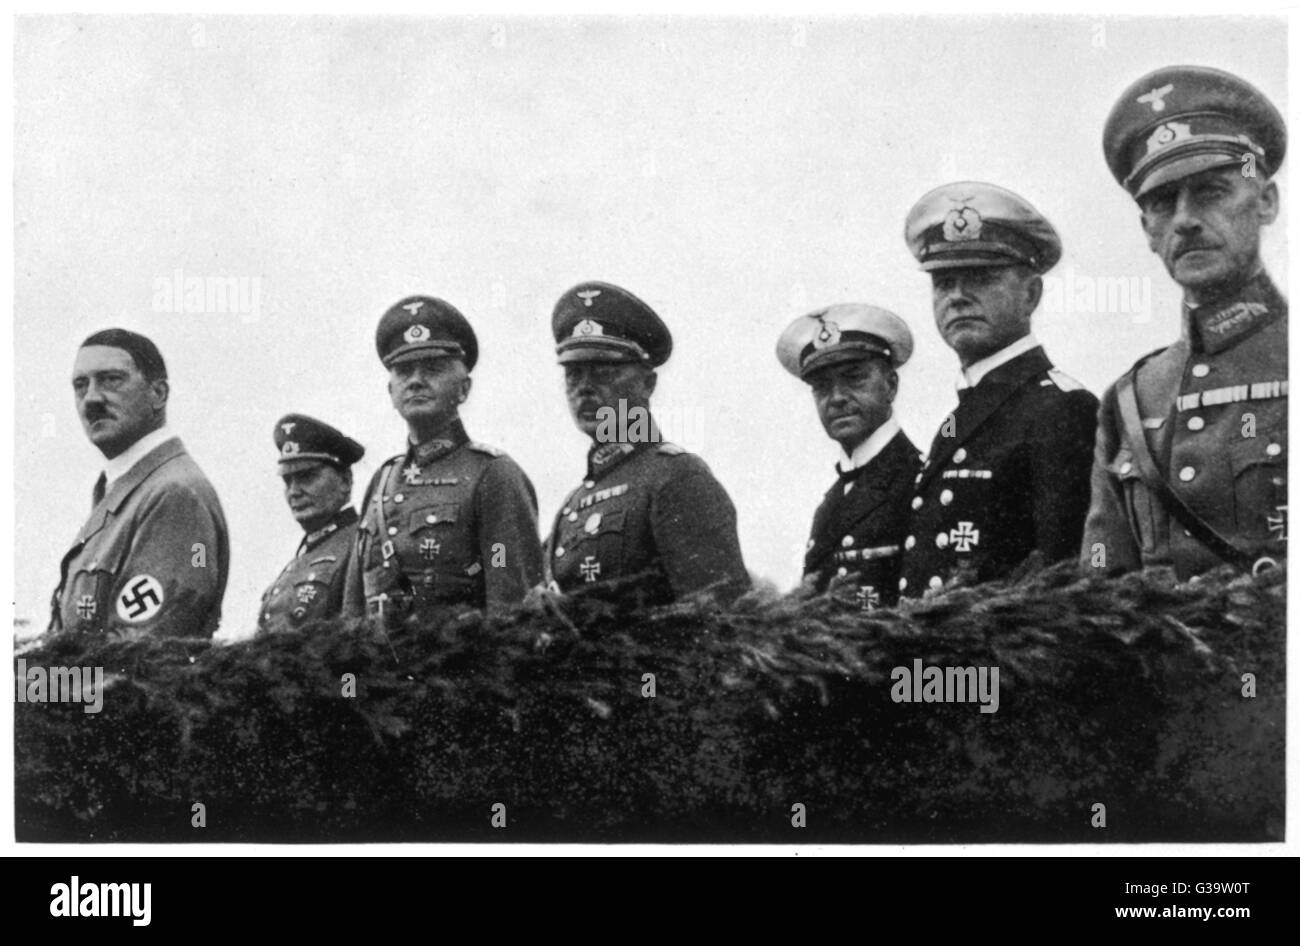 ADOLF HITLER  With Wehrmacht officers on Tage der Wehrmacht, 1935       Date: 1935 - Stock Image